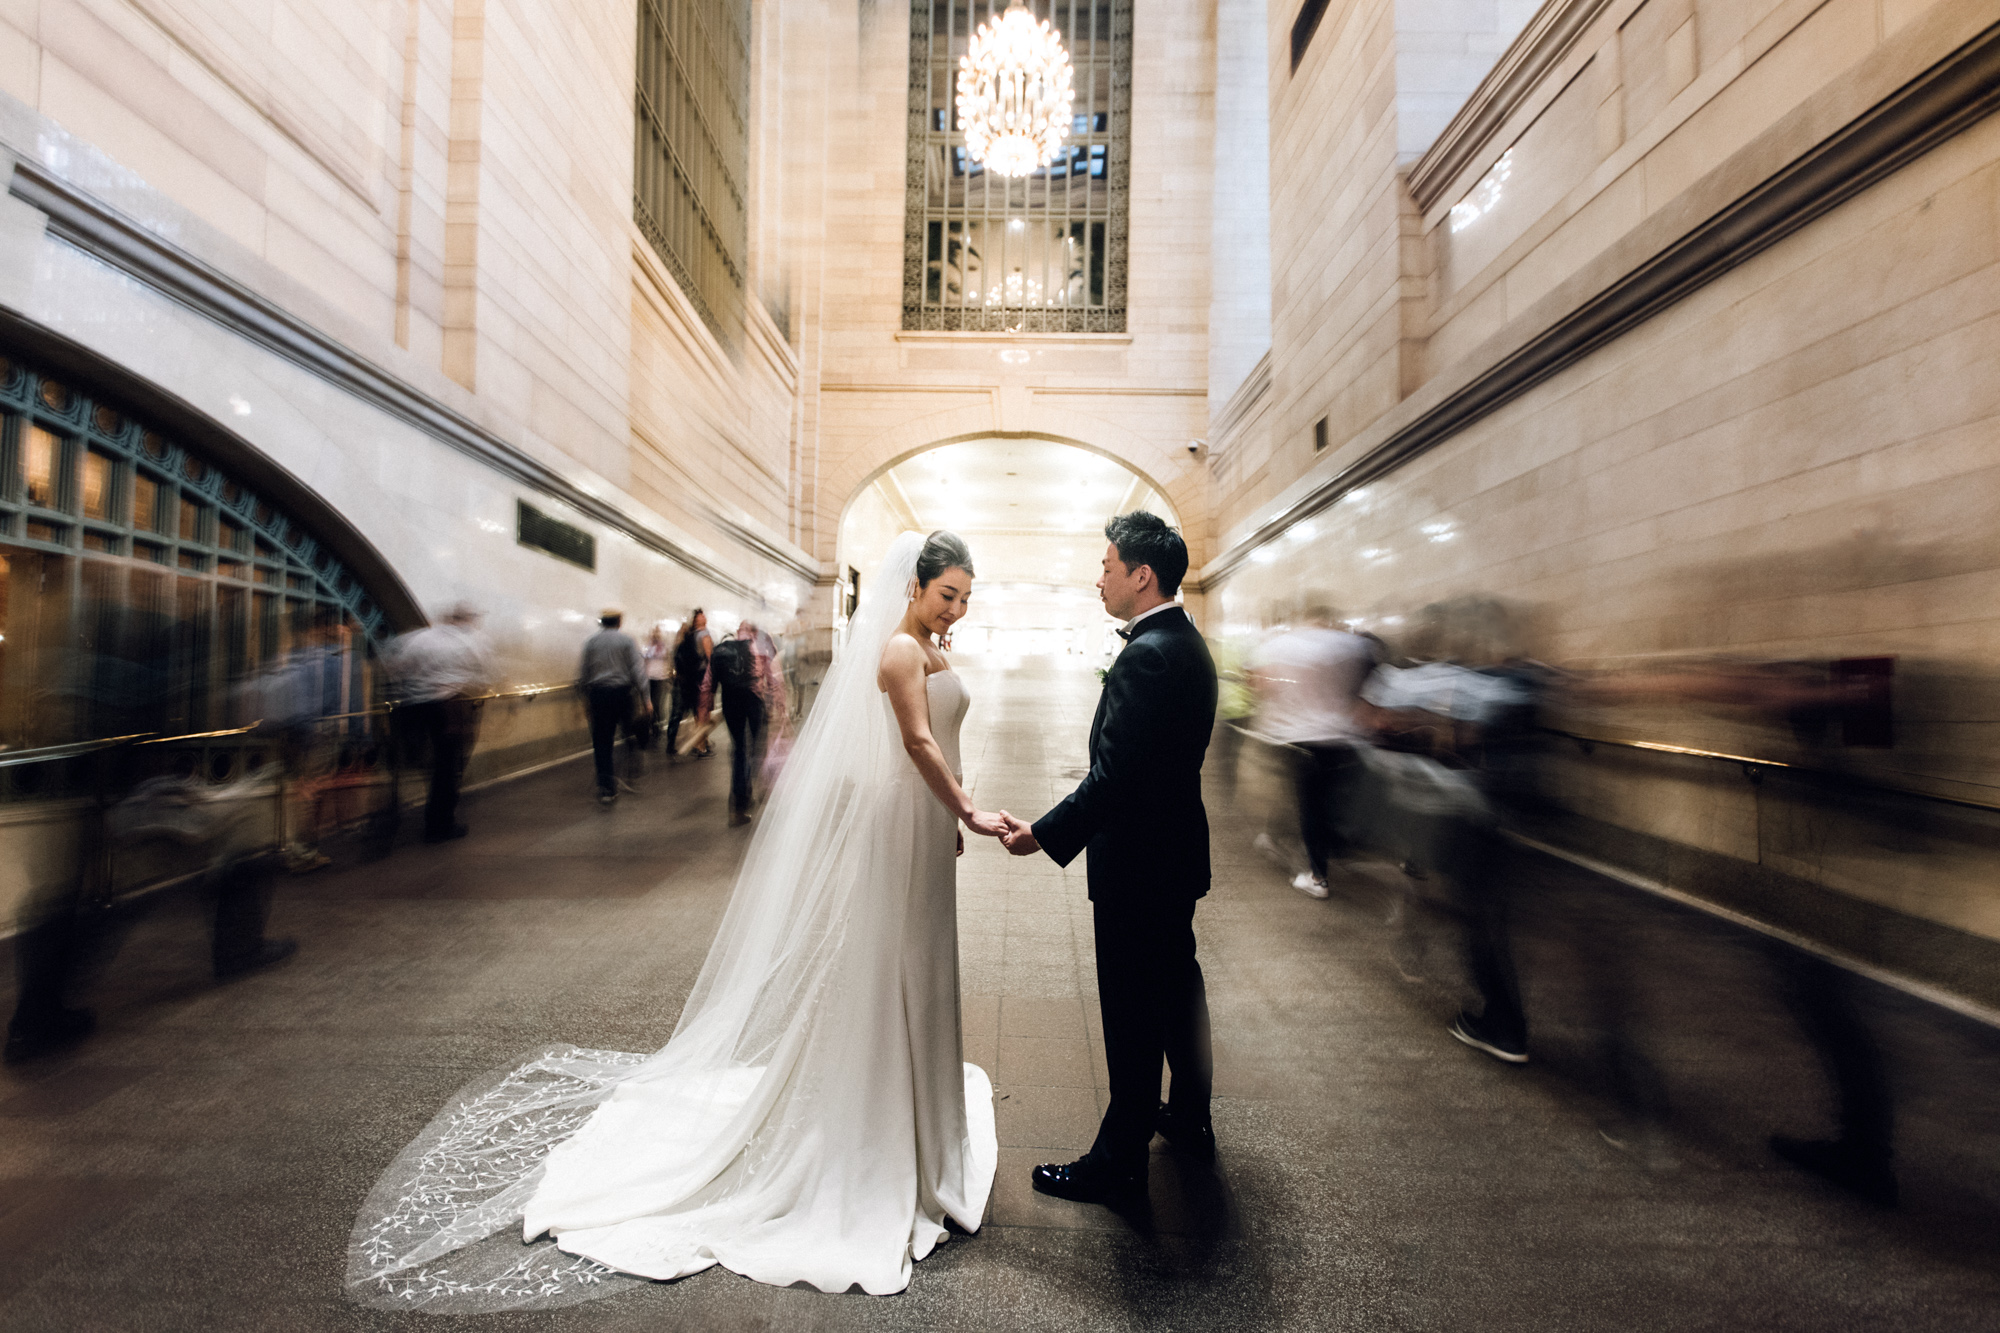 New York Wedding Photographer Boris Zaretsky NYC Wedding Photography Motohiro Yumi5X2A2525-Edit.jpg